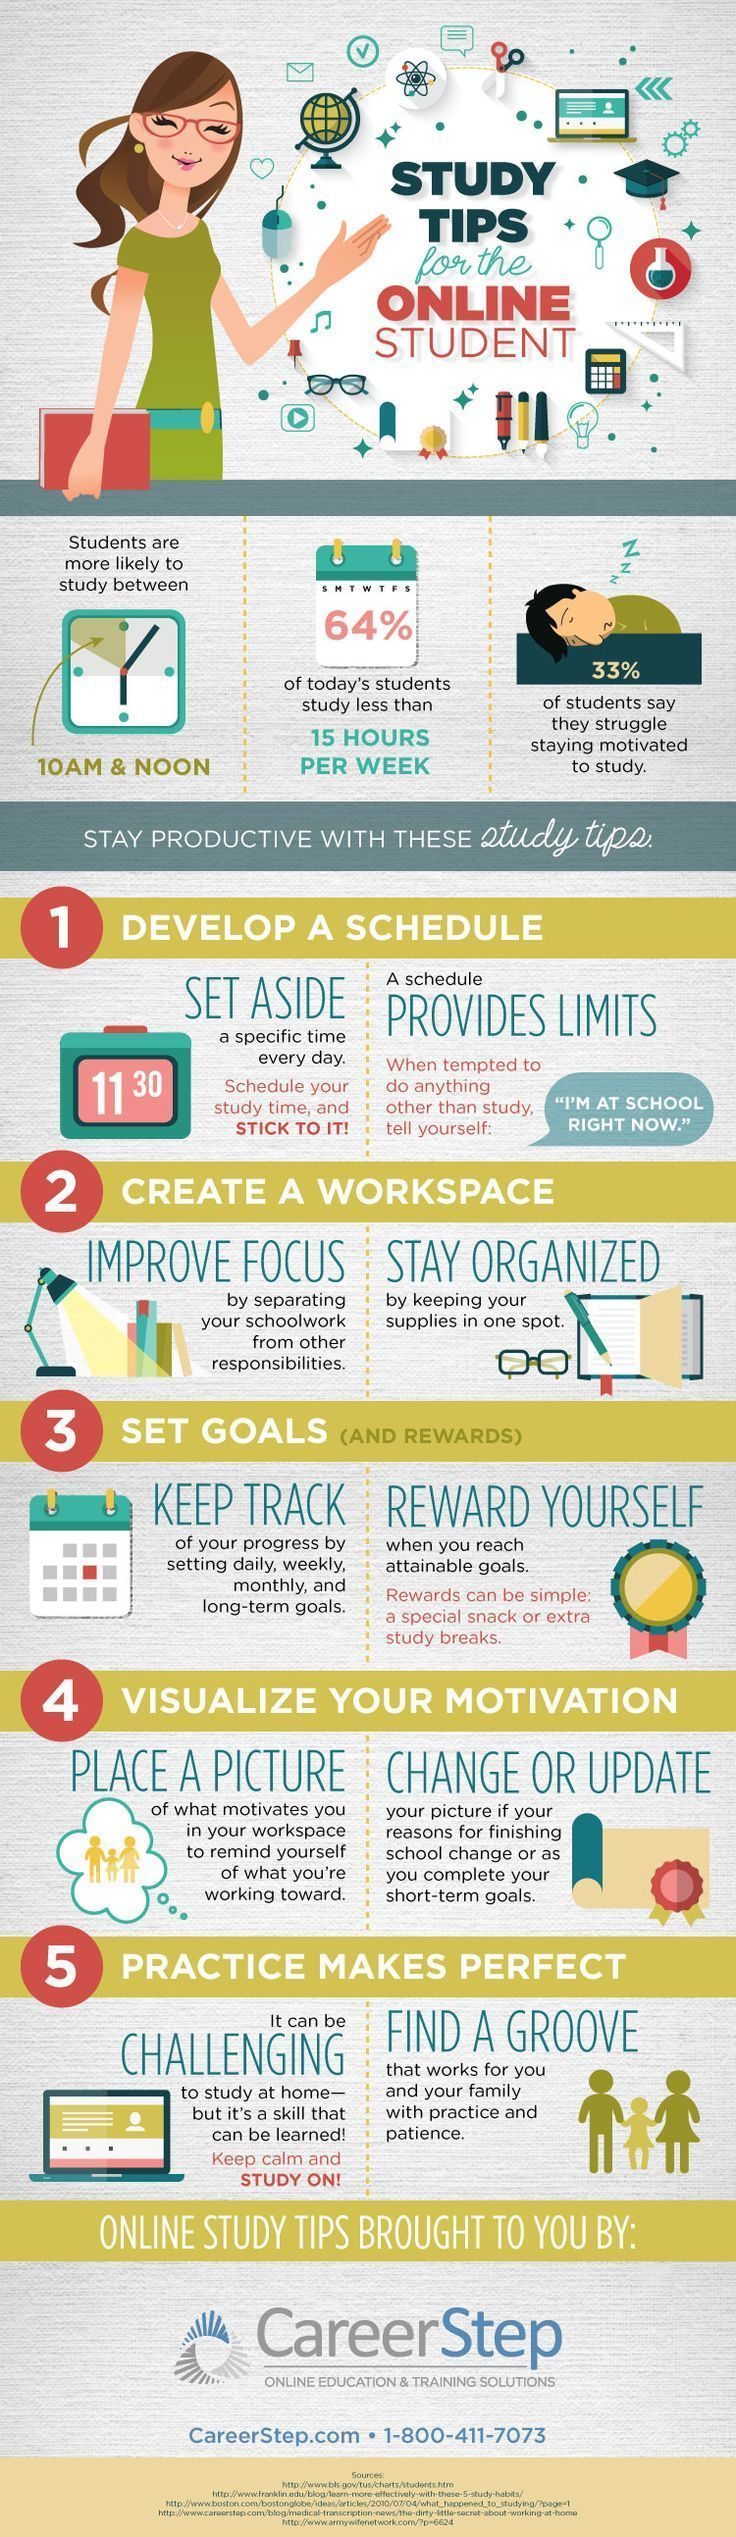 5 Great Study Tips For Online Students Infographic - http://elearninginfographics.com/5-great-study-tips-for-online-students-infographic/